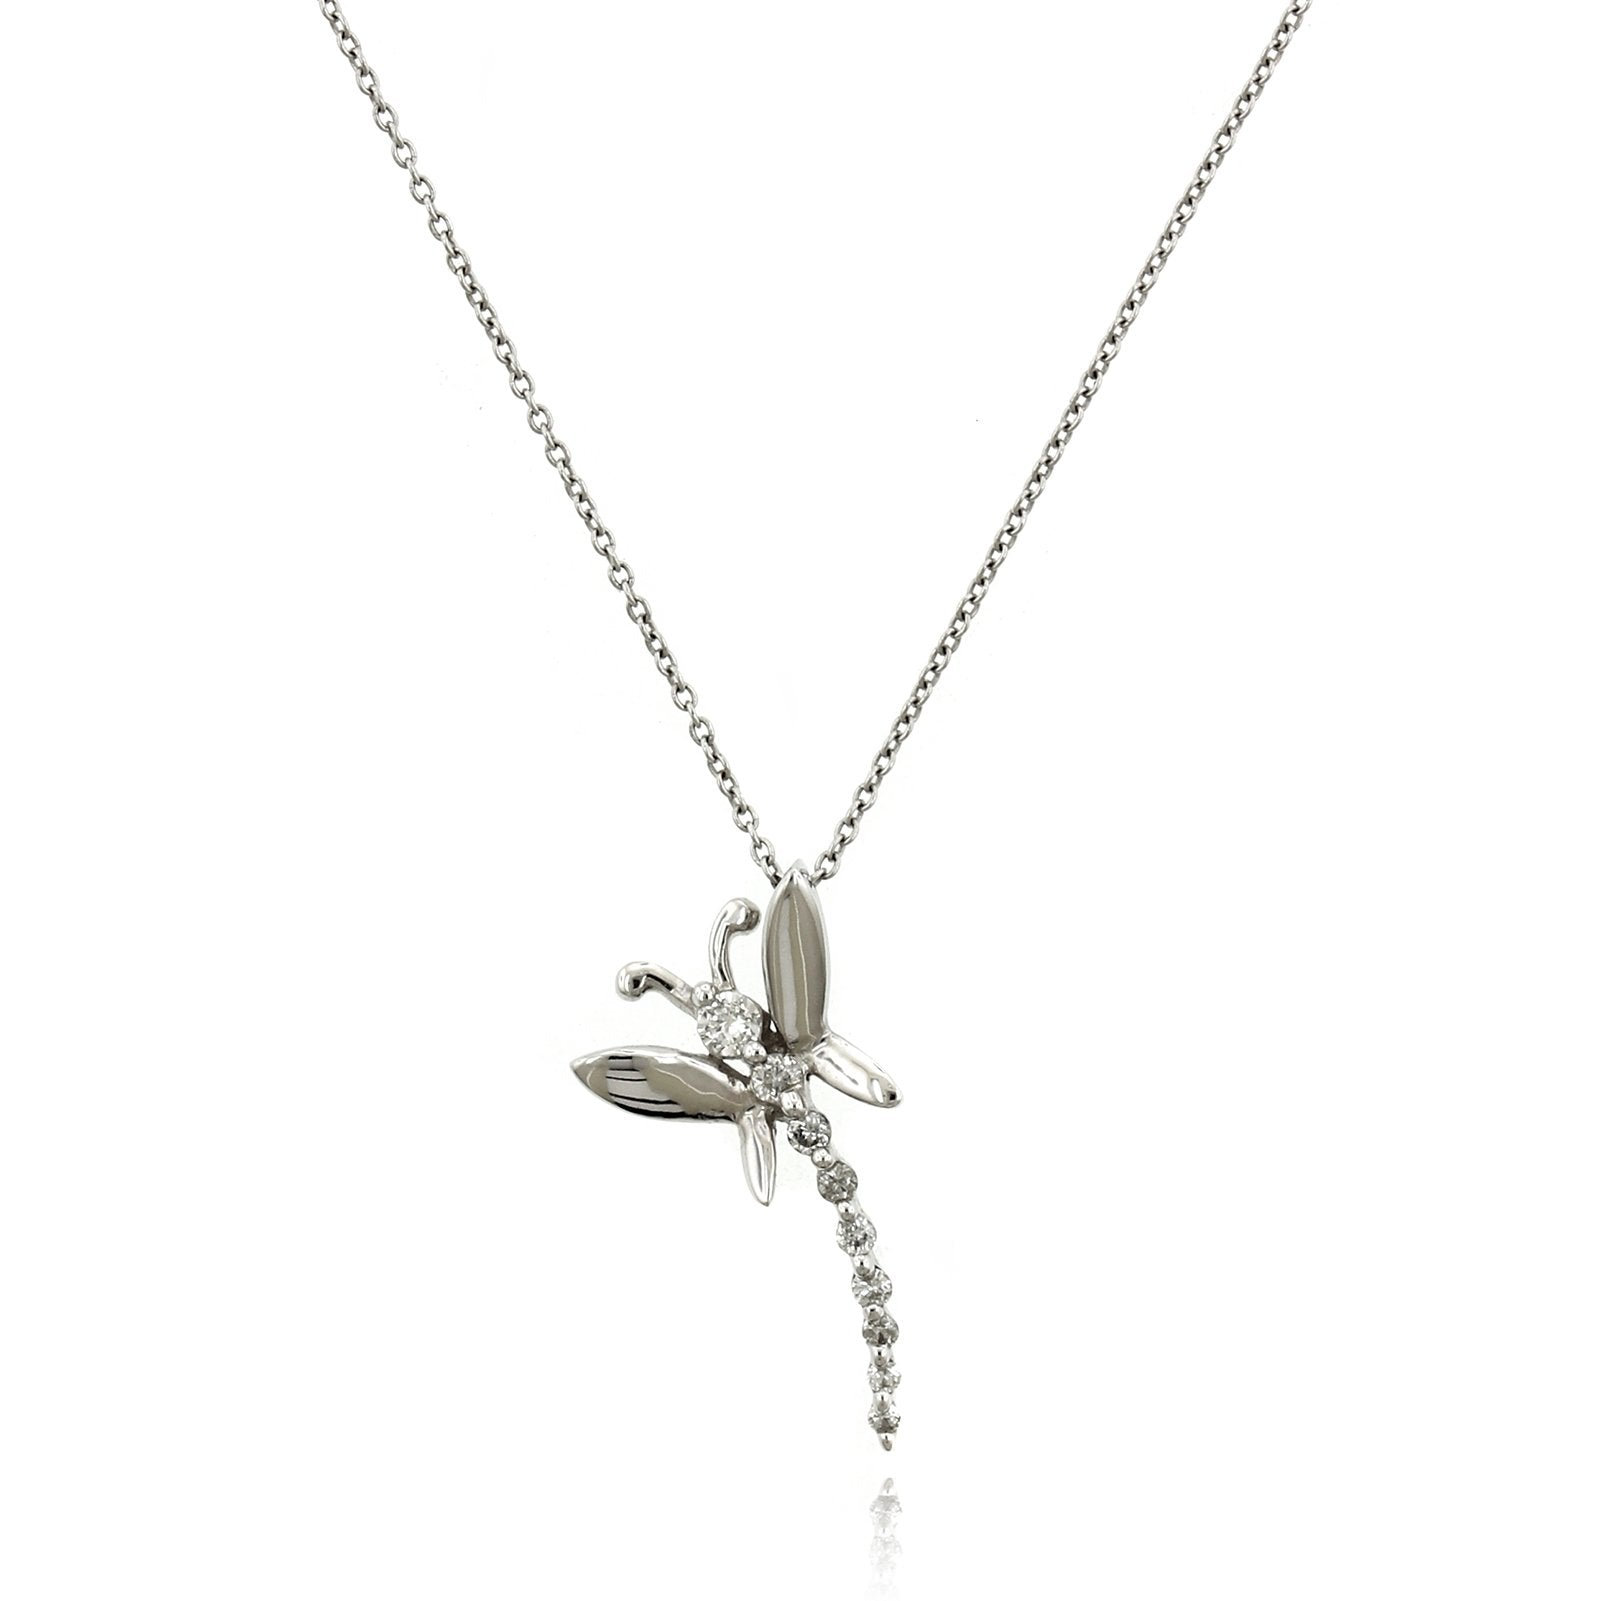 14K White Gold Dragonfly Pendant